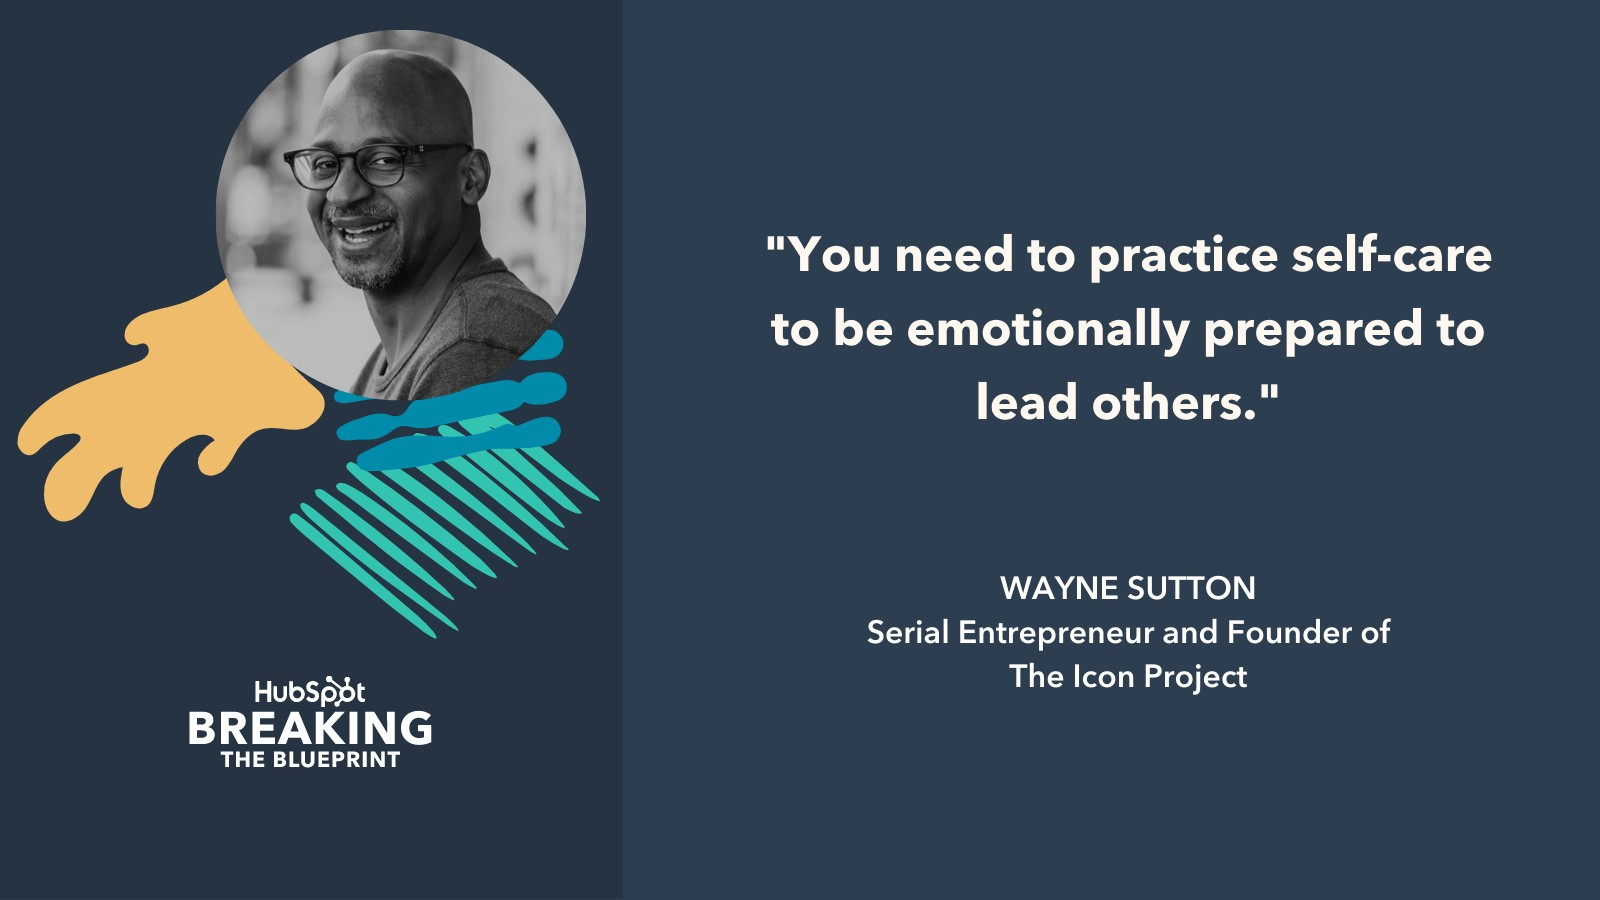 wayne sutton leadership advice for black business owners